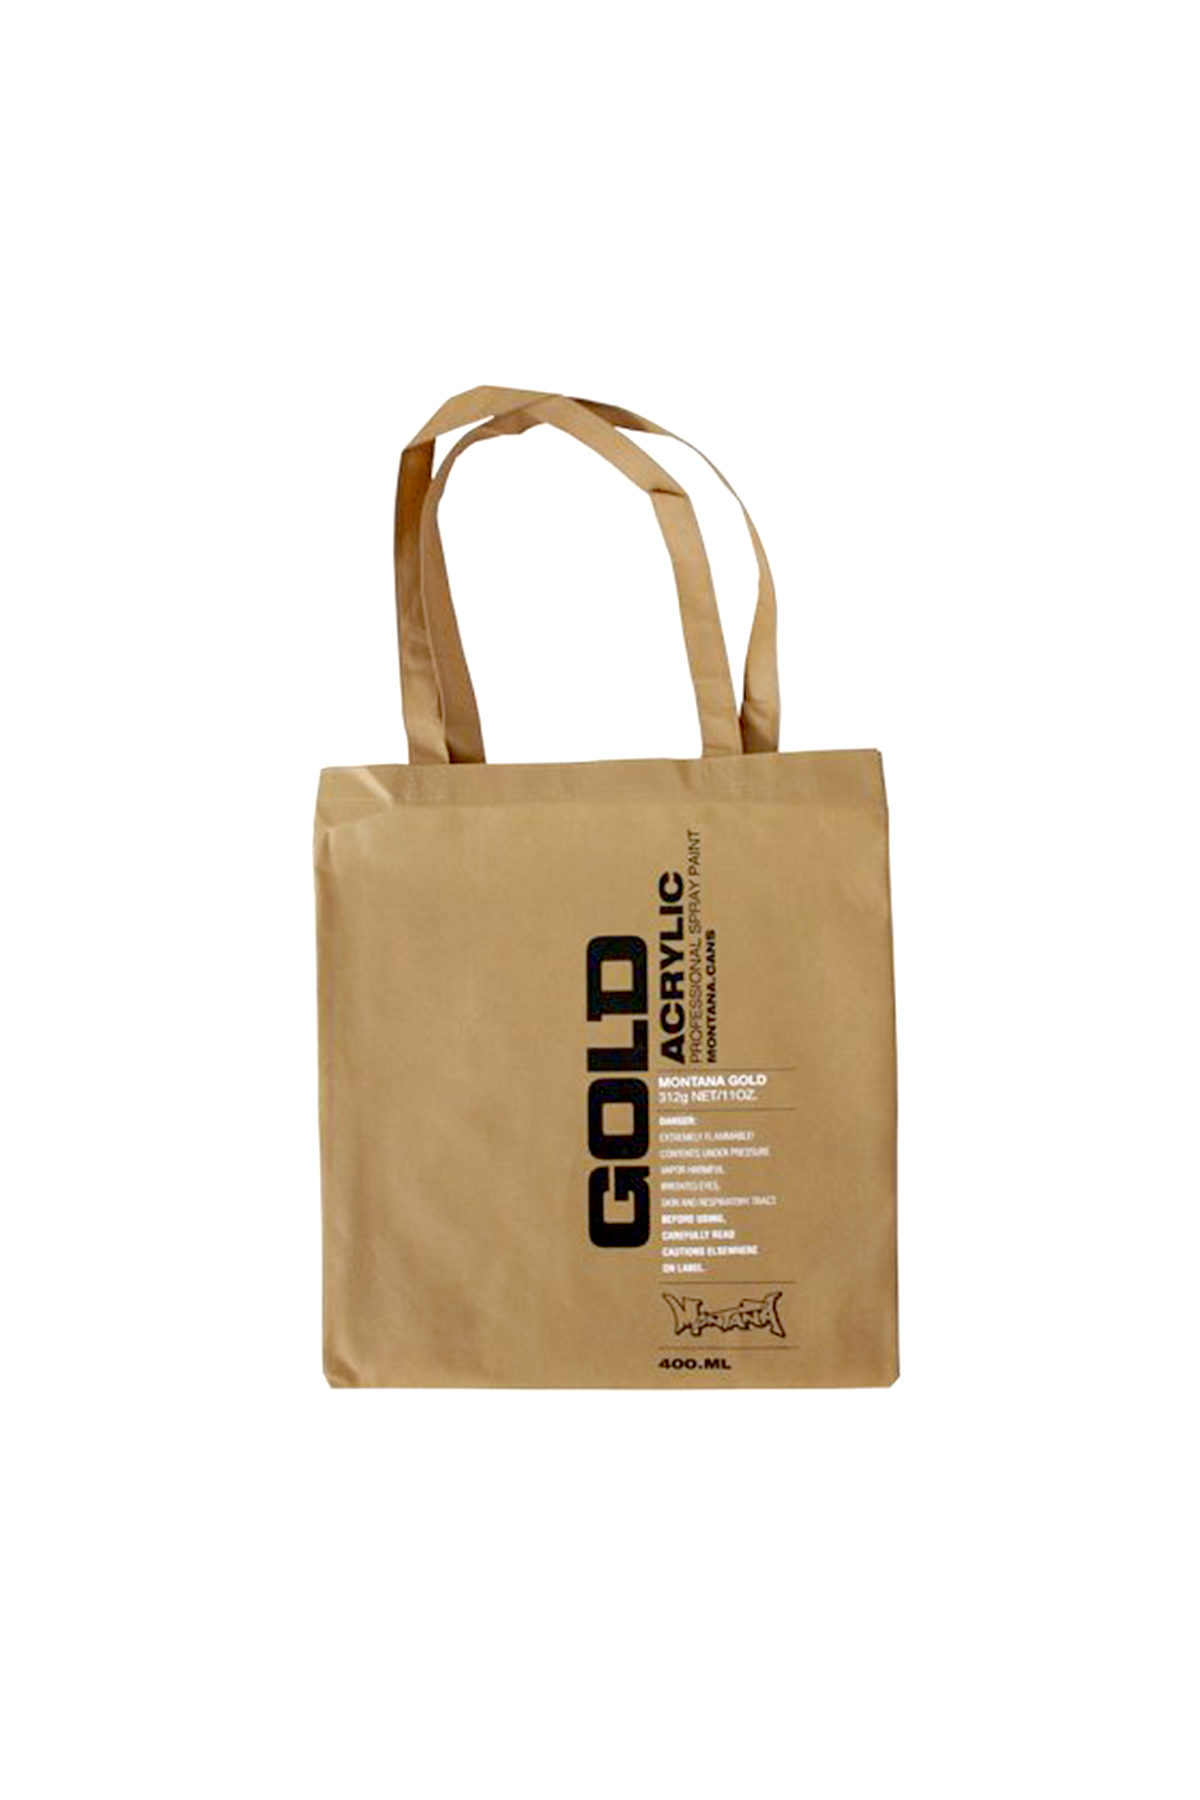 Montana PP BAG - Gold